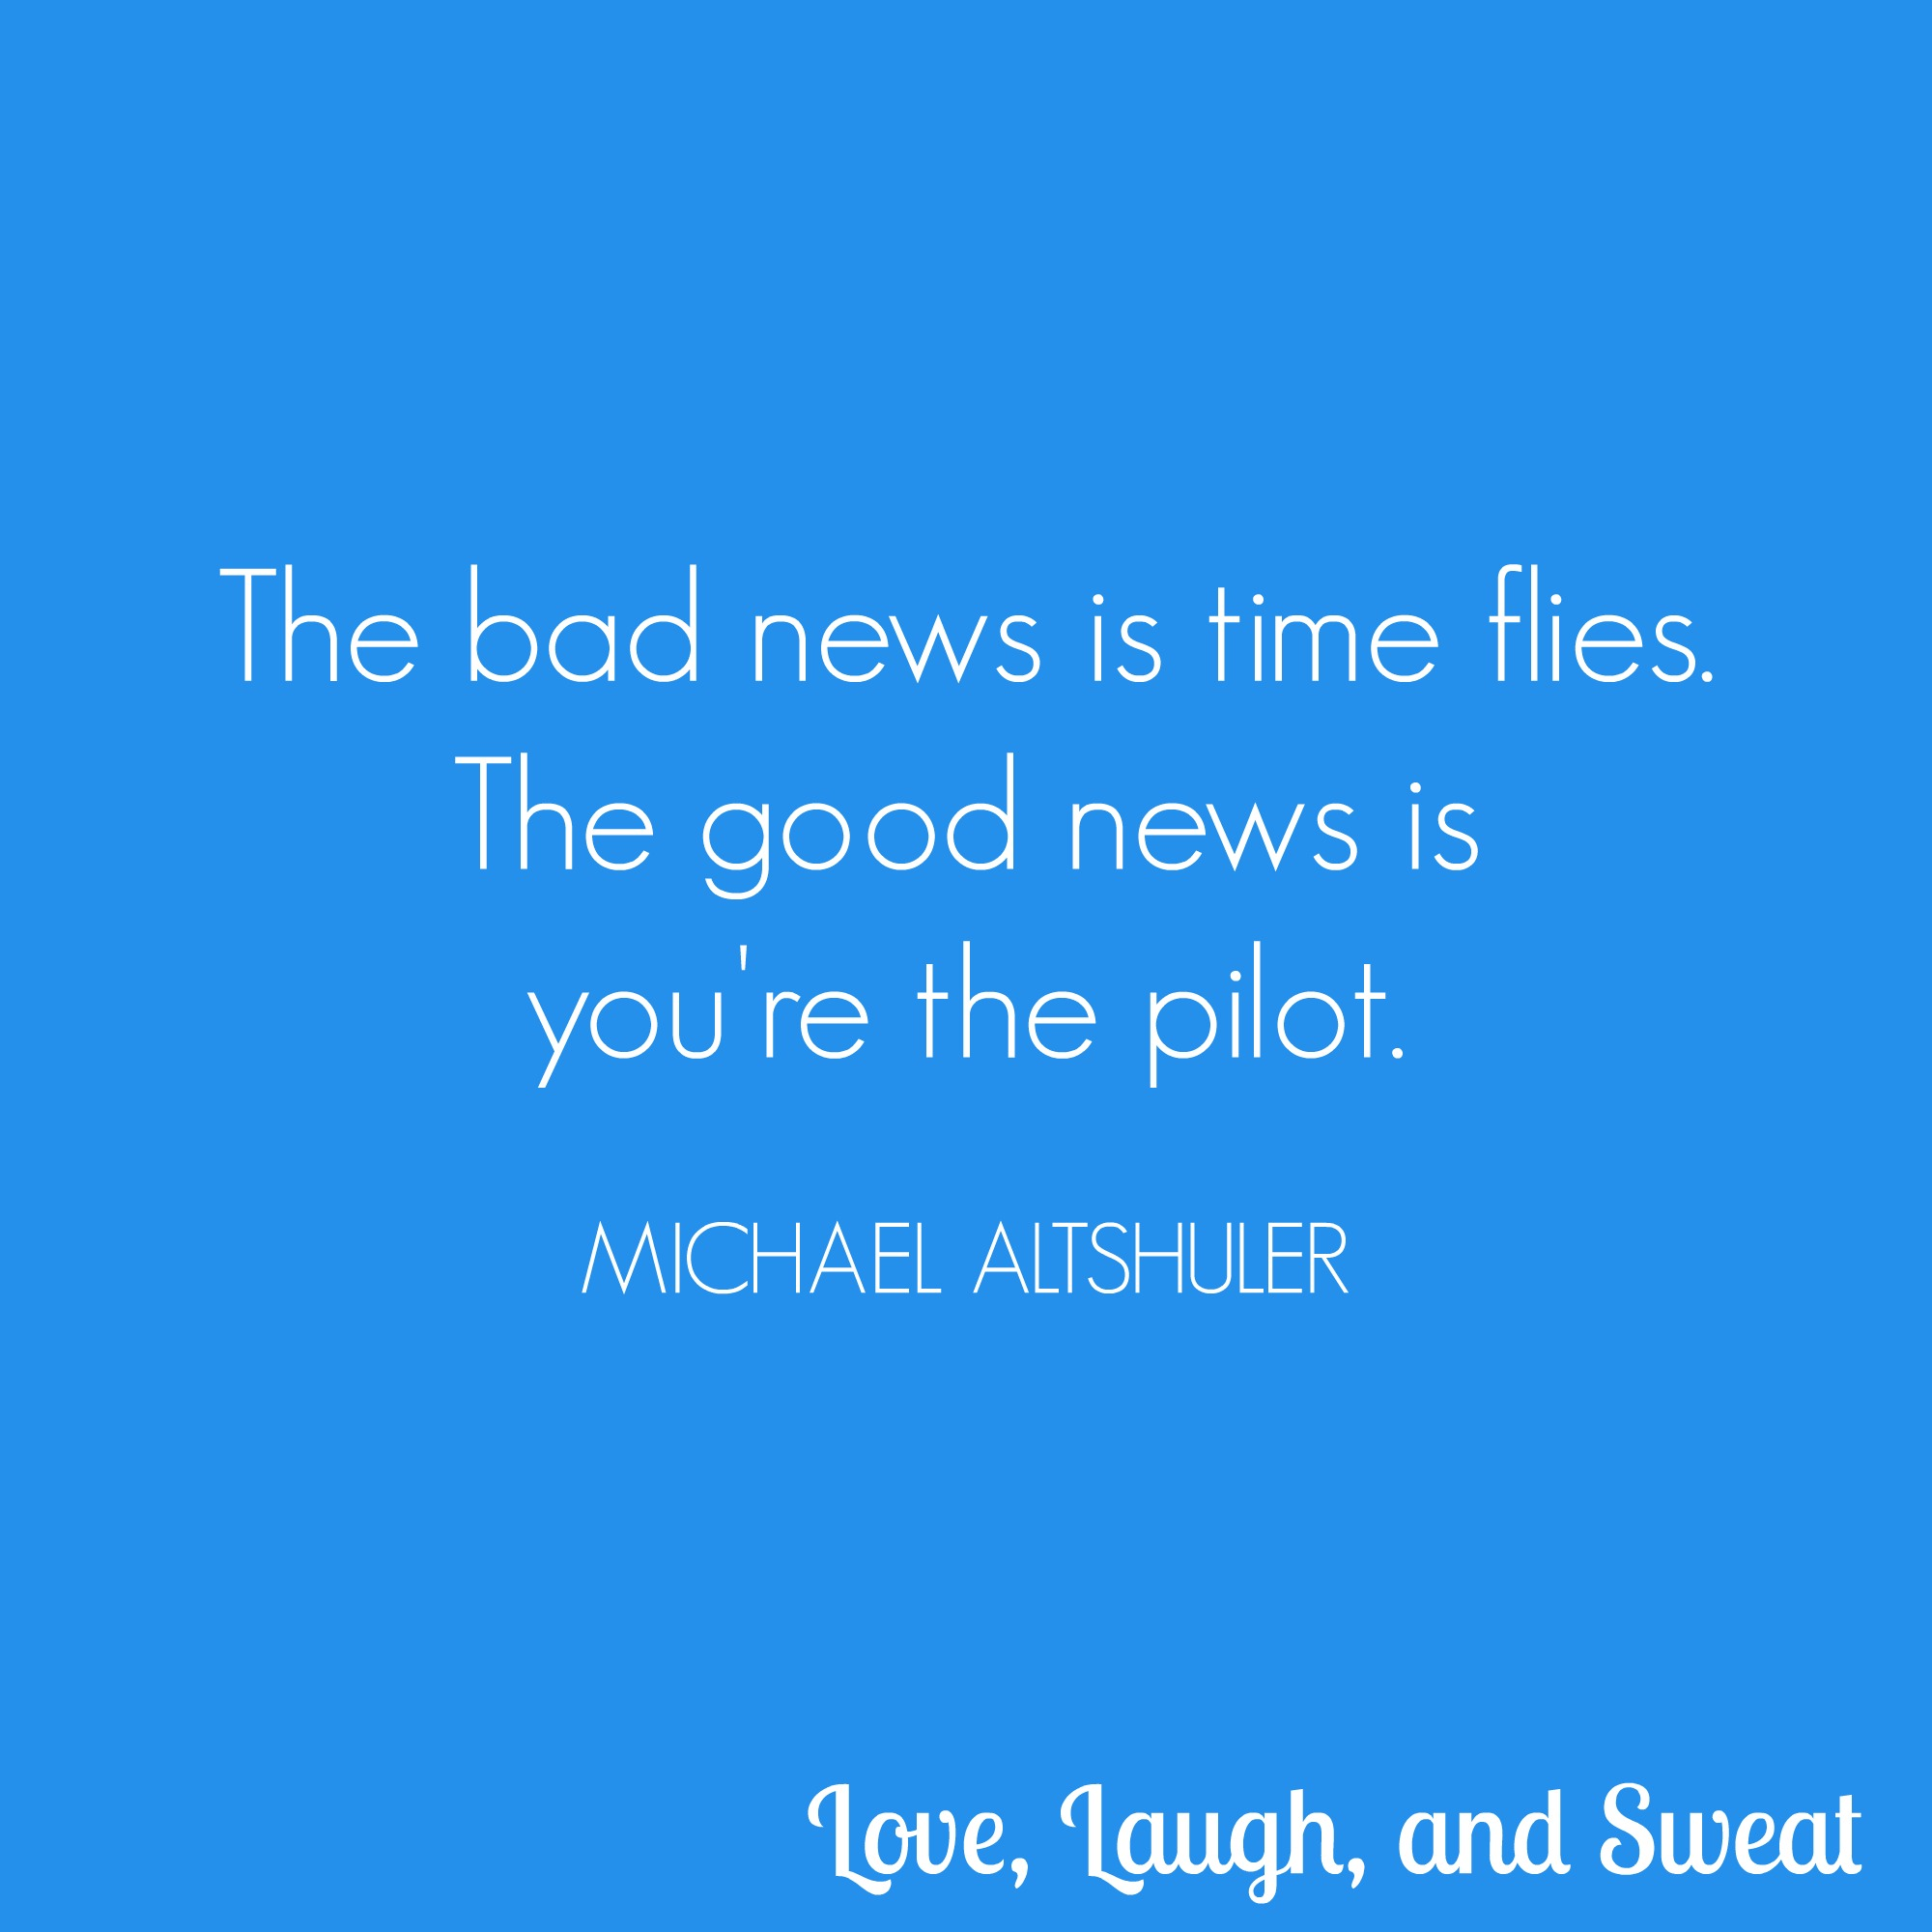 You are the Pilot